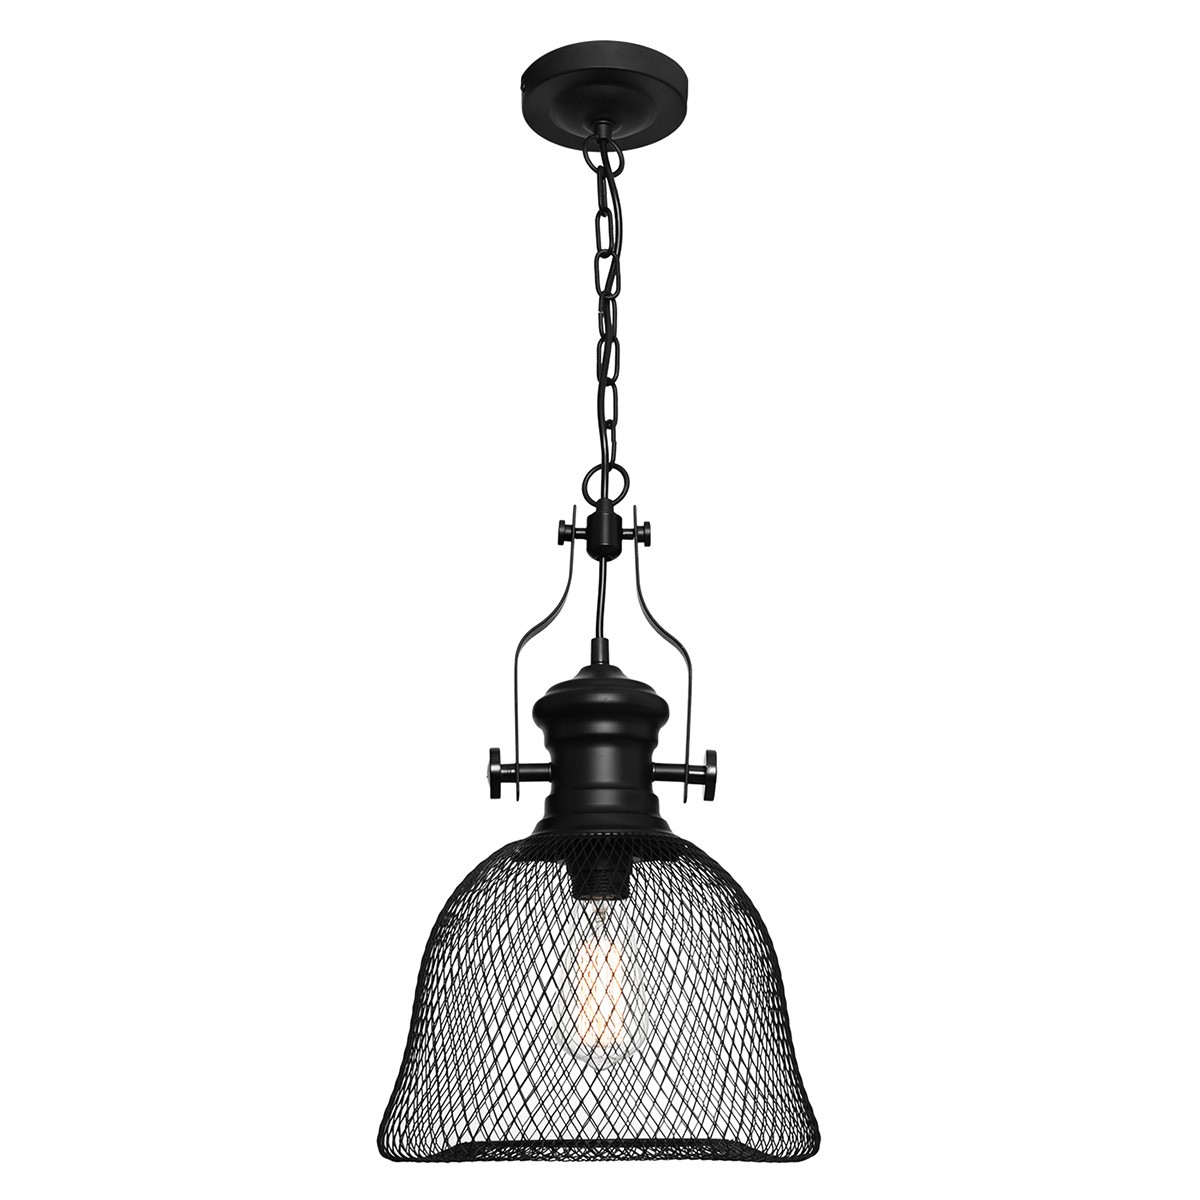 Argyle Industrial Metal Mesh Pendant Light, Small